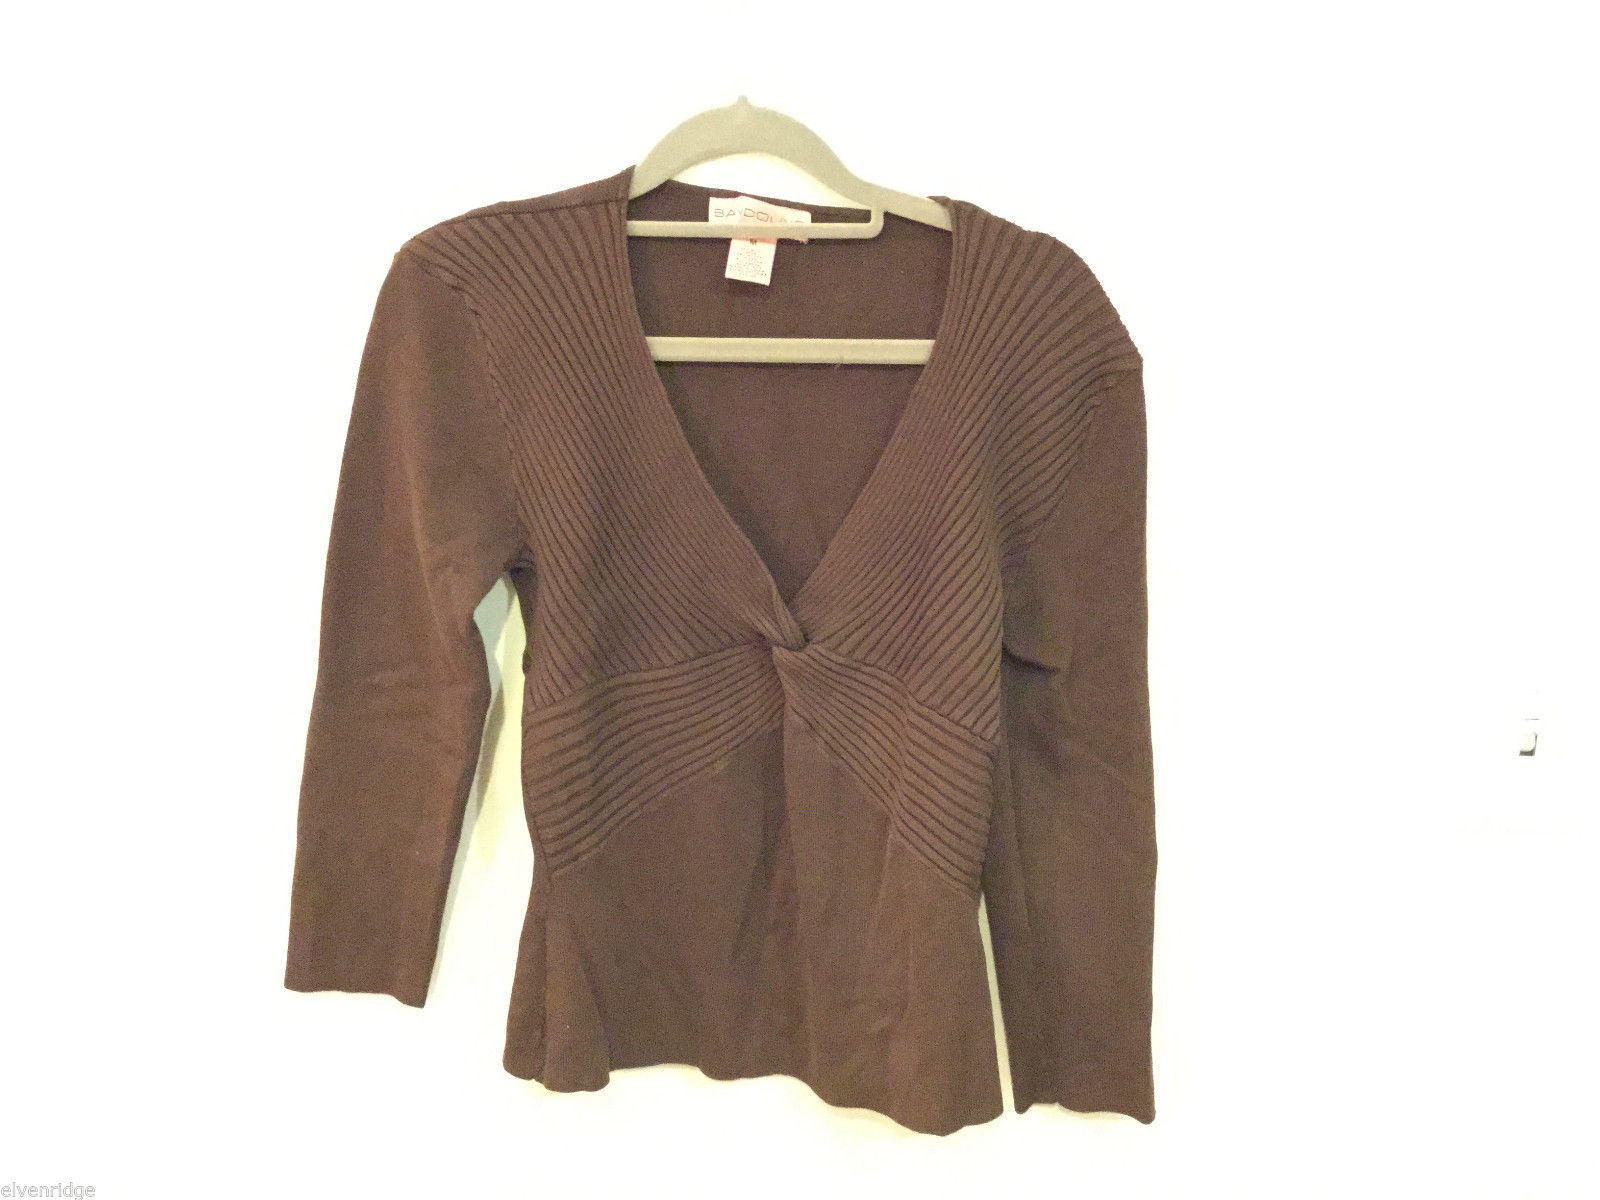 Bandolino medium brown blouse sweater, knot on front, lined design, Size M